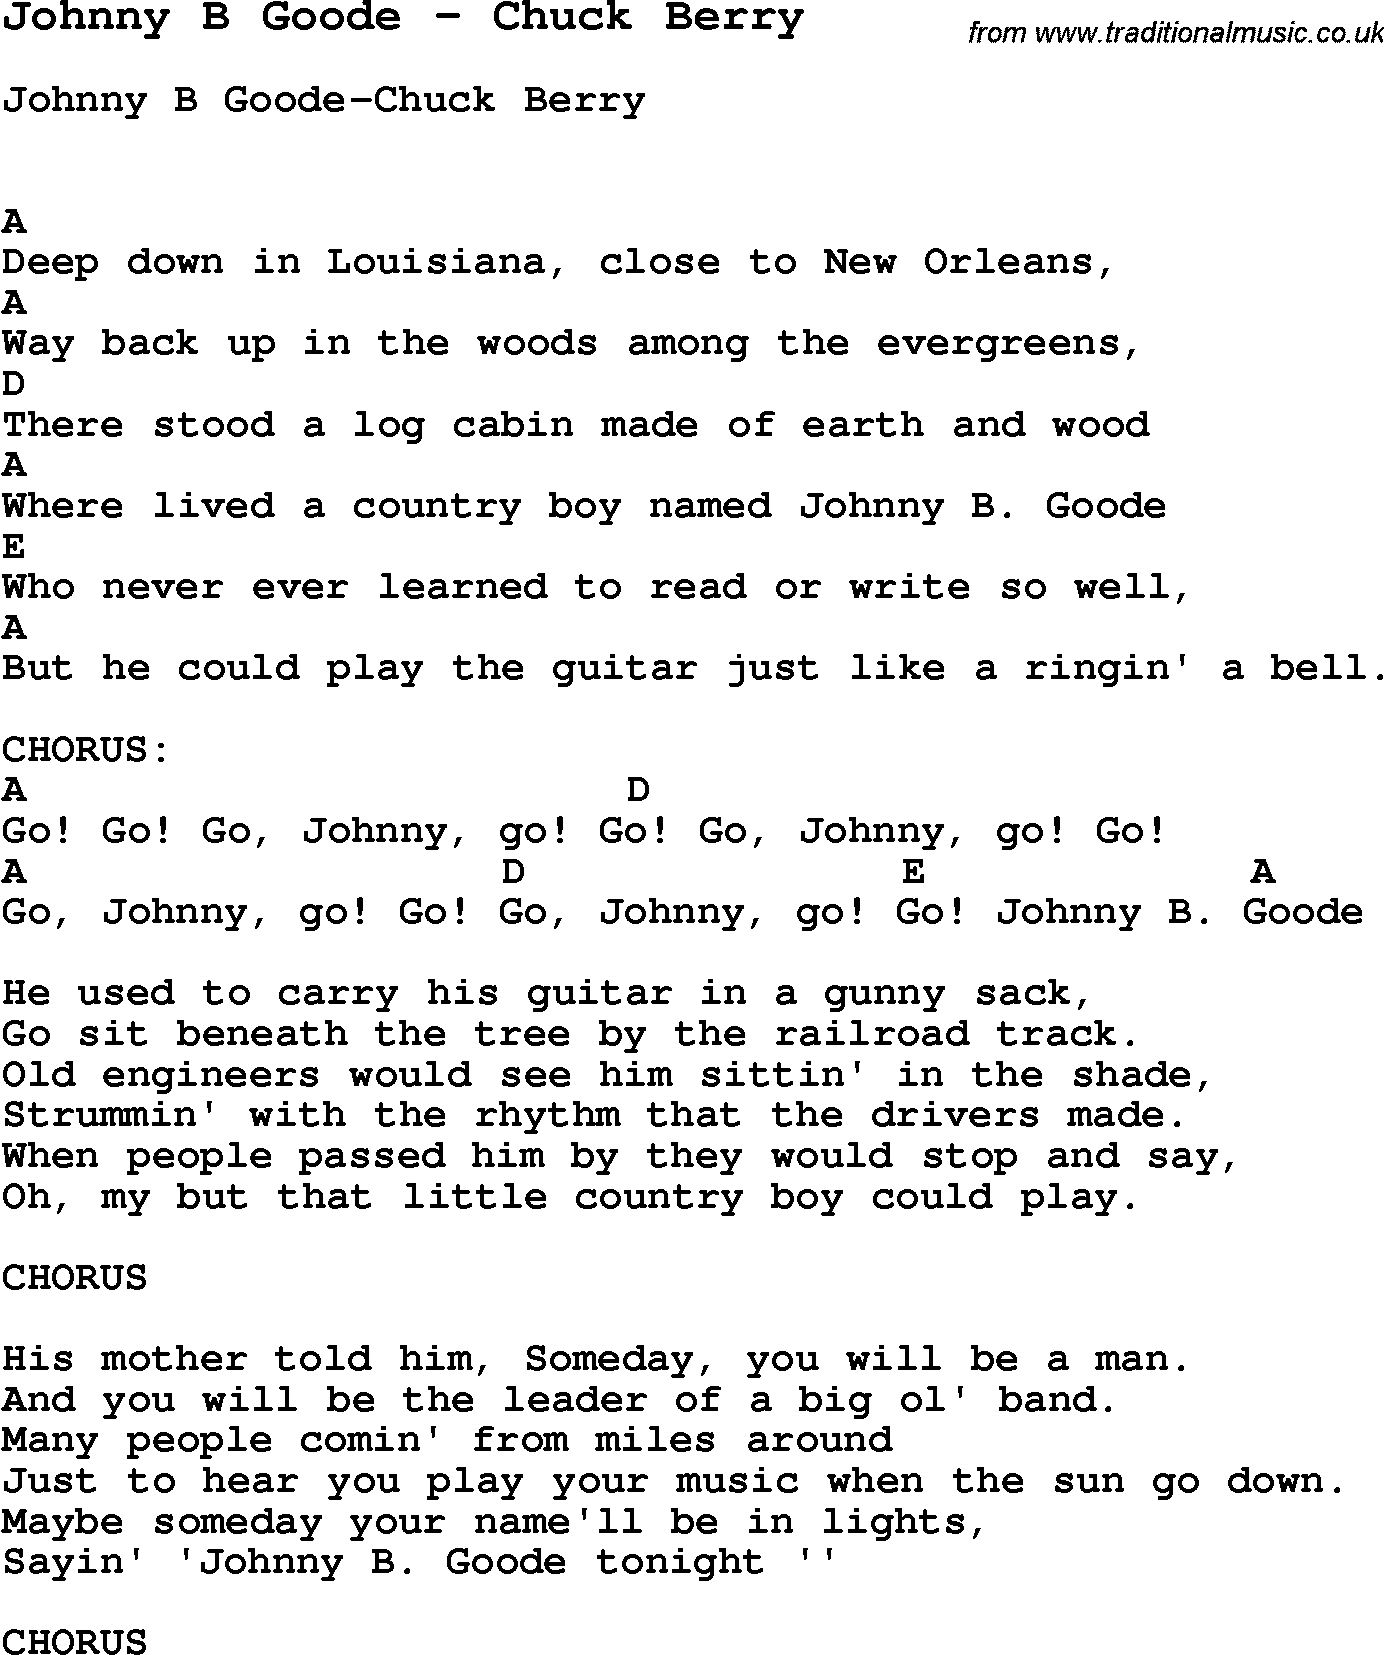 Chuck Berry - Johnny B. Goode - Lyrics - YouTube